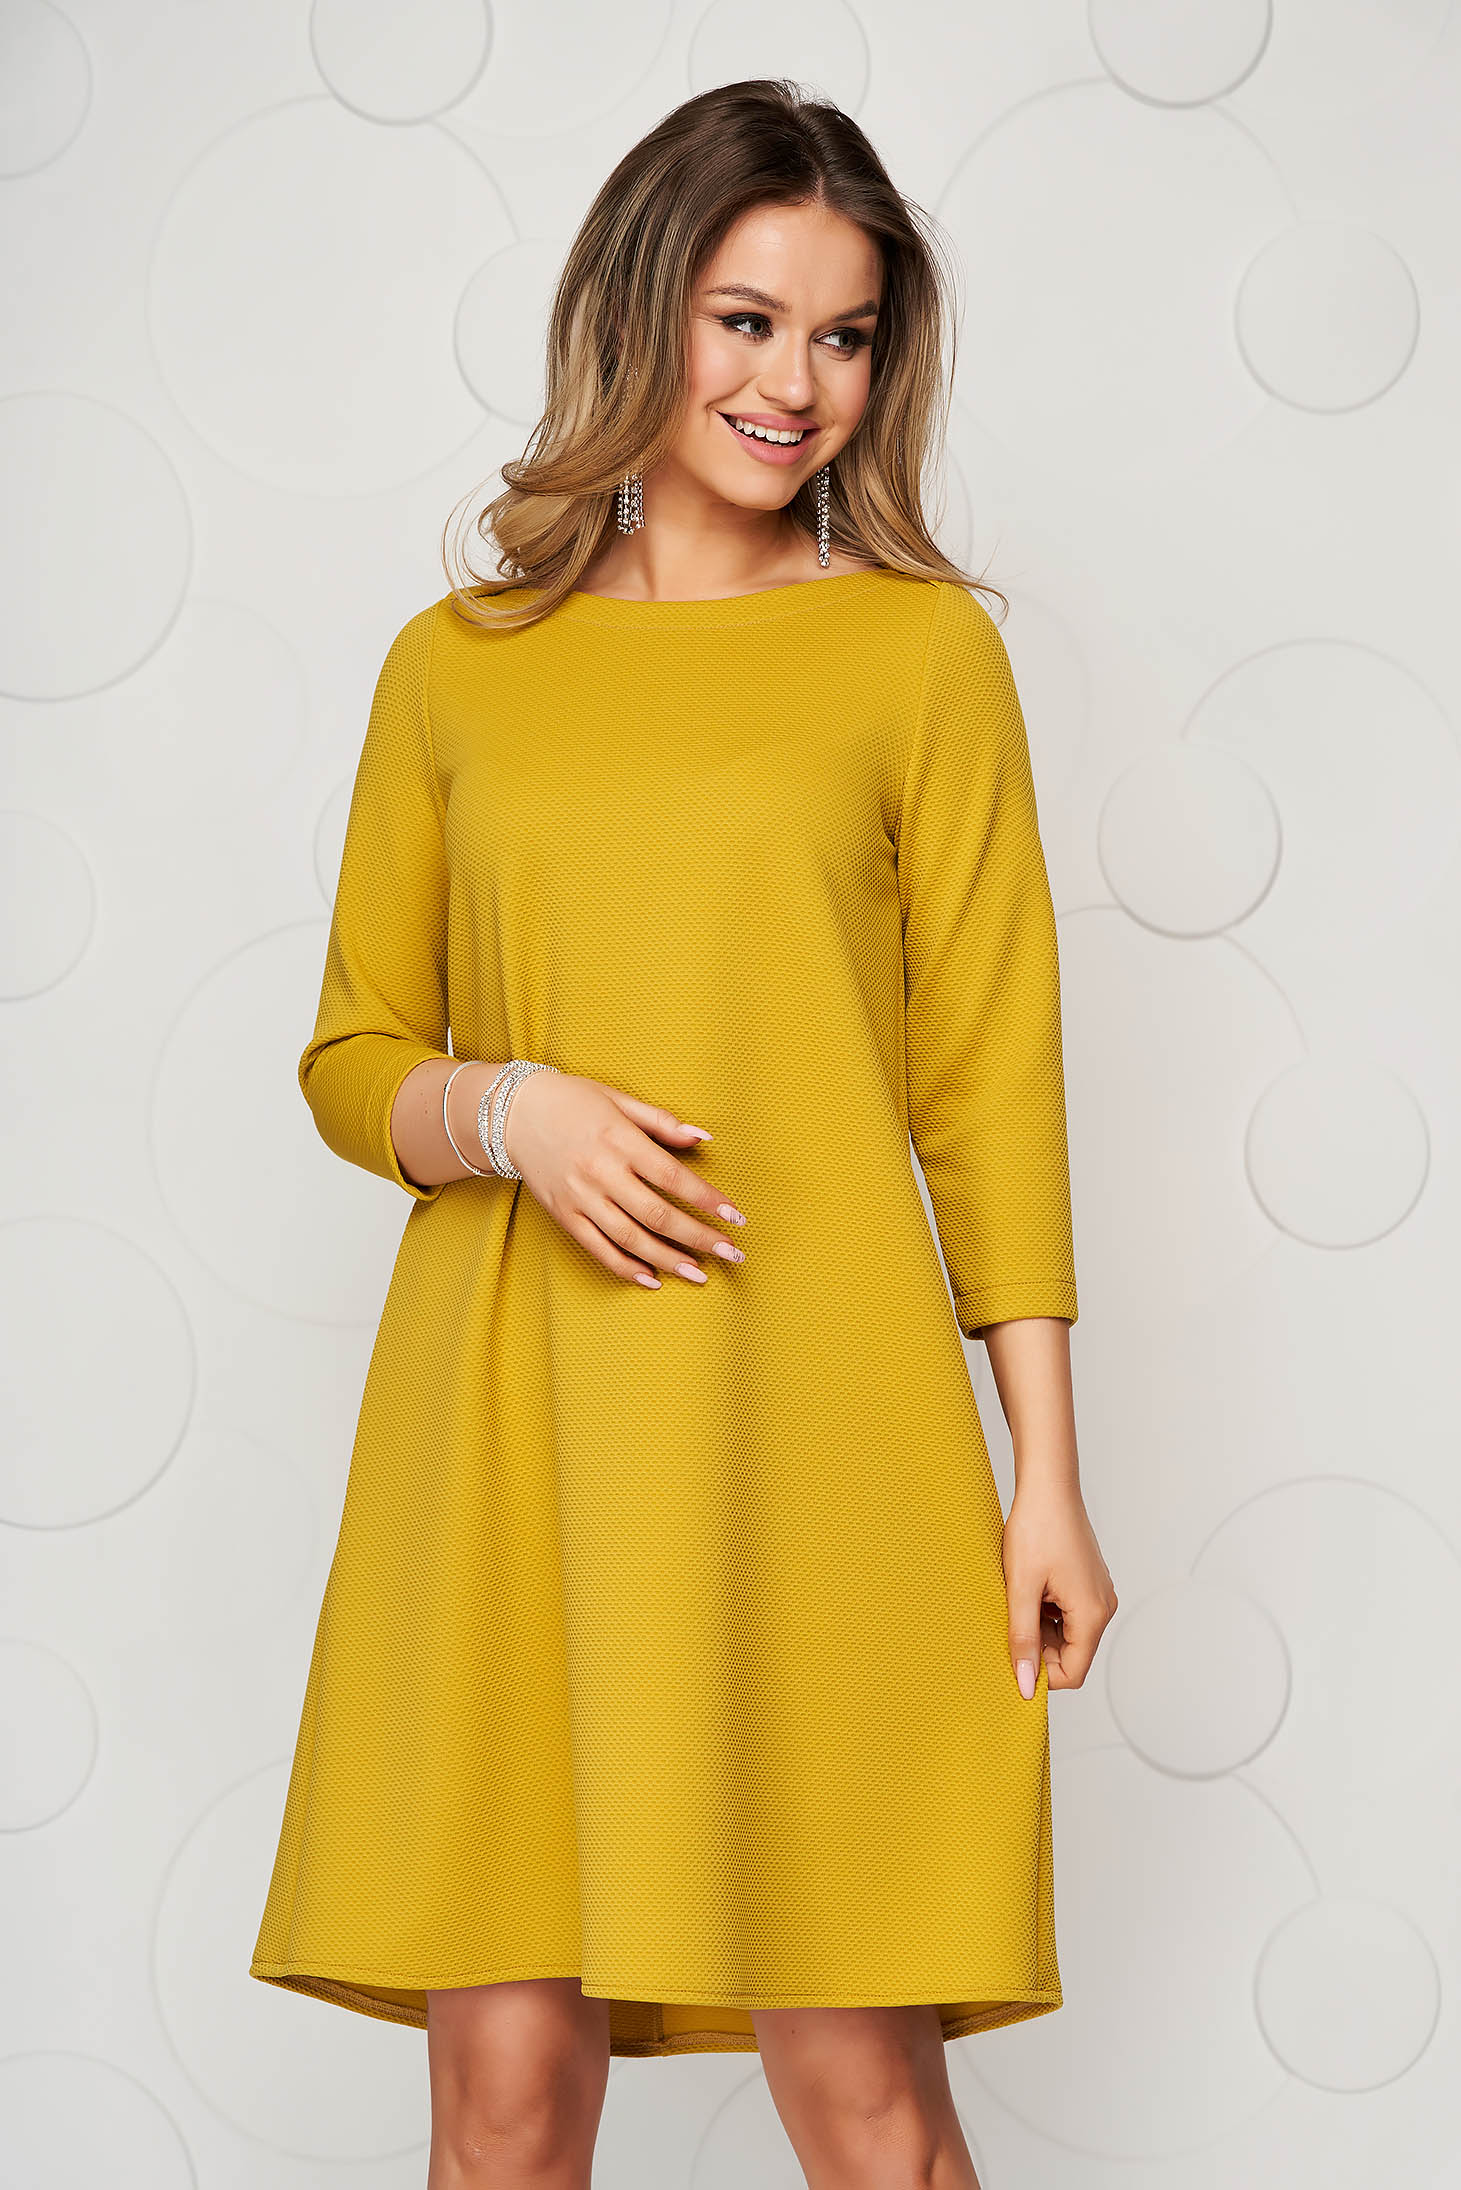 StarShinerS yellow dress short cut daily loose fit from elastic fabric